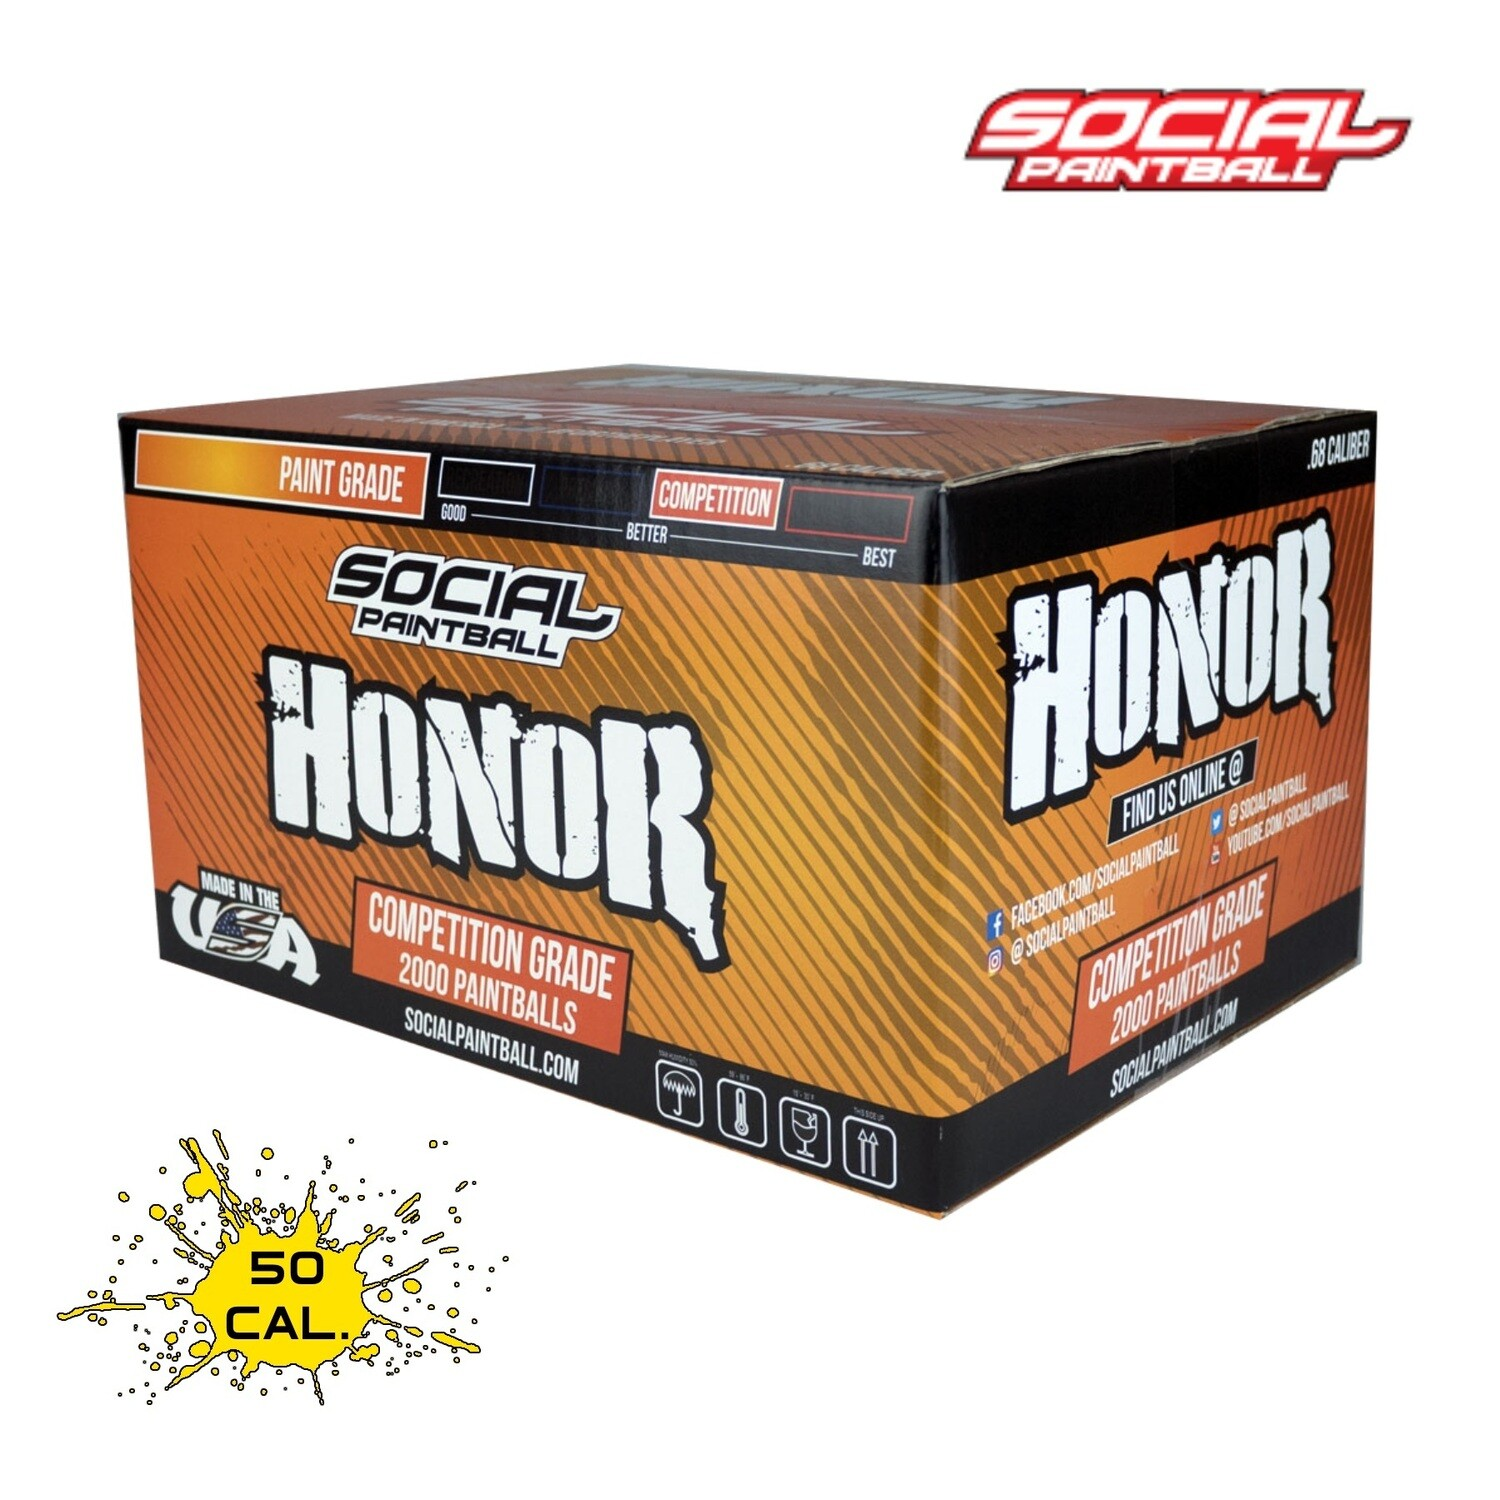 Social Paintball Honor .50 cal Paintballs - Case of 4000 Rds - Yellow Fill